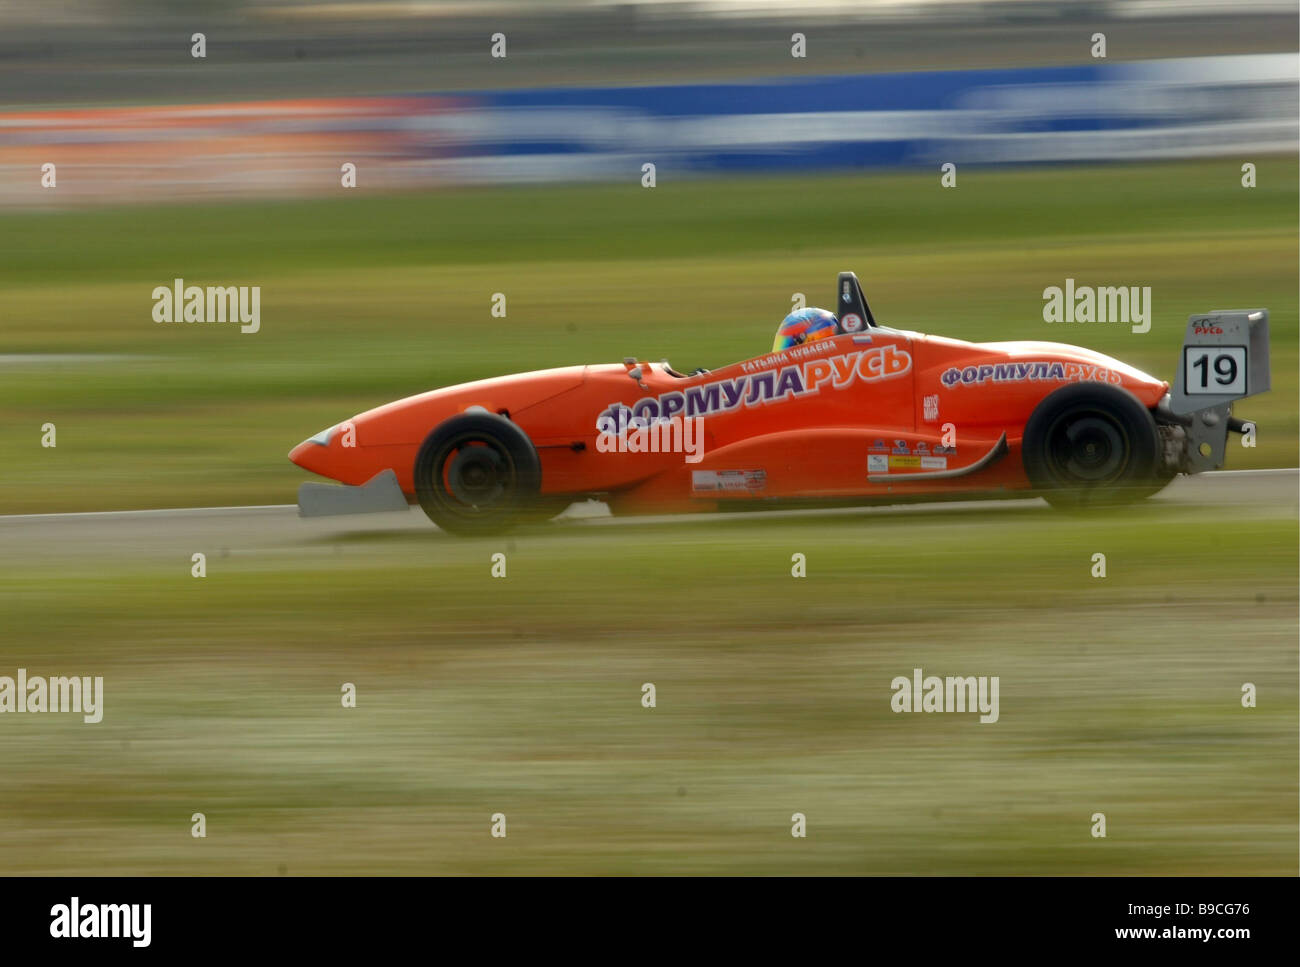 A race car from the Formula Rus qualifying group piloted by Tatiana Chuvayeva at the Russian motor circuit racing - Stock Image